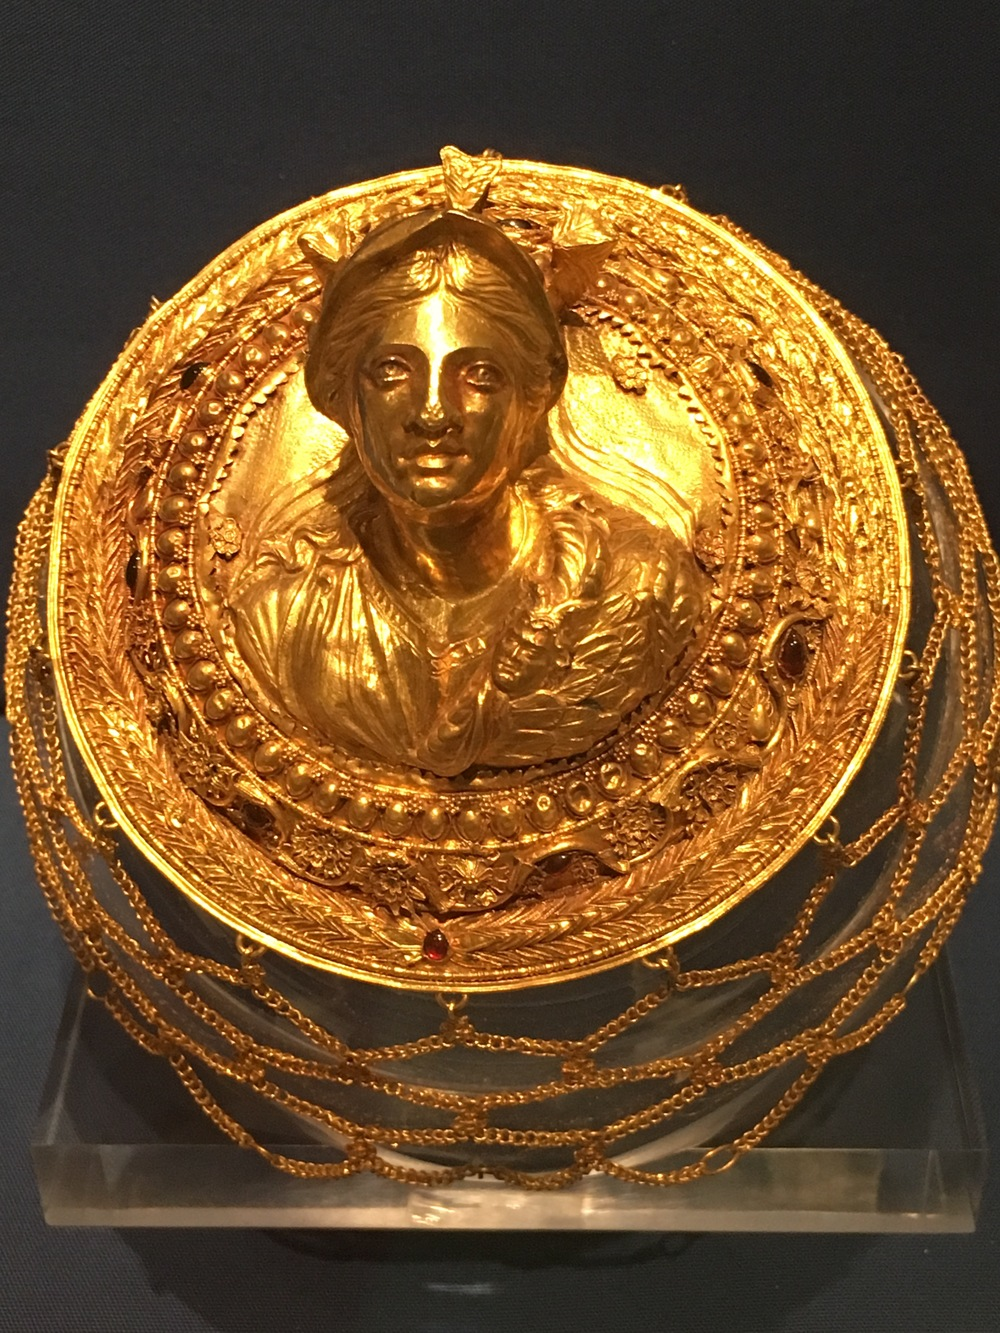 Gold open wormen's hair net with a medallion